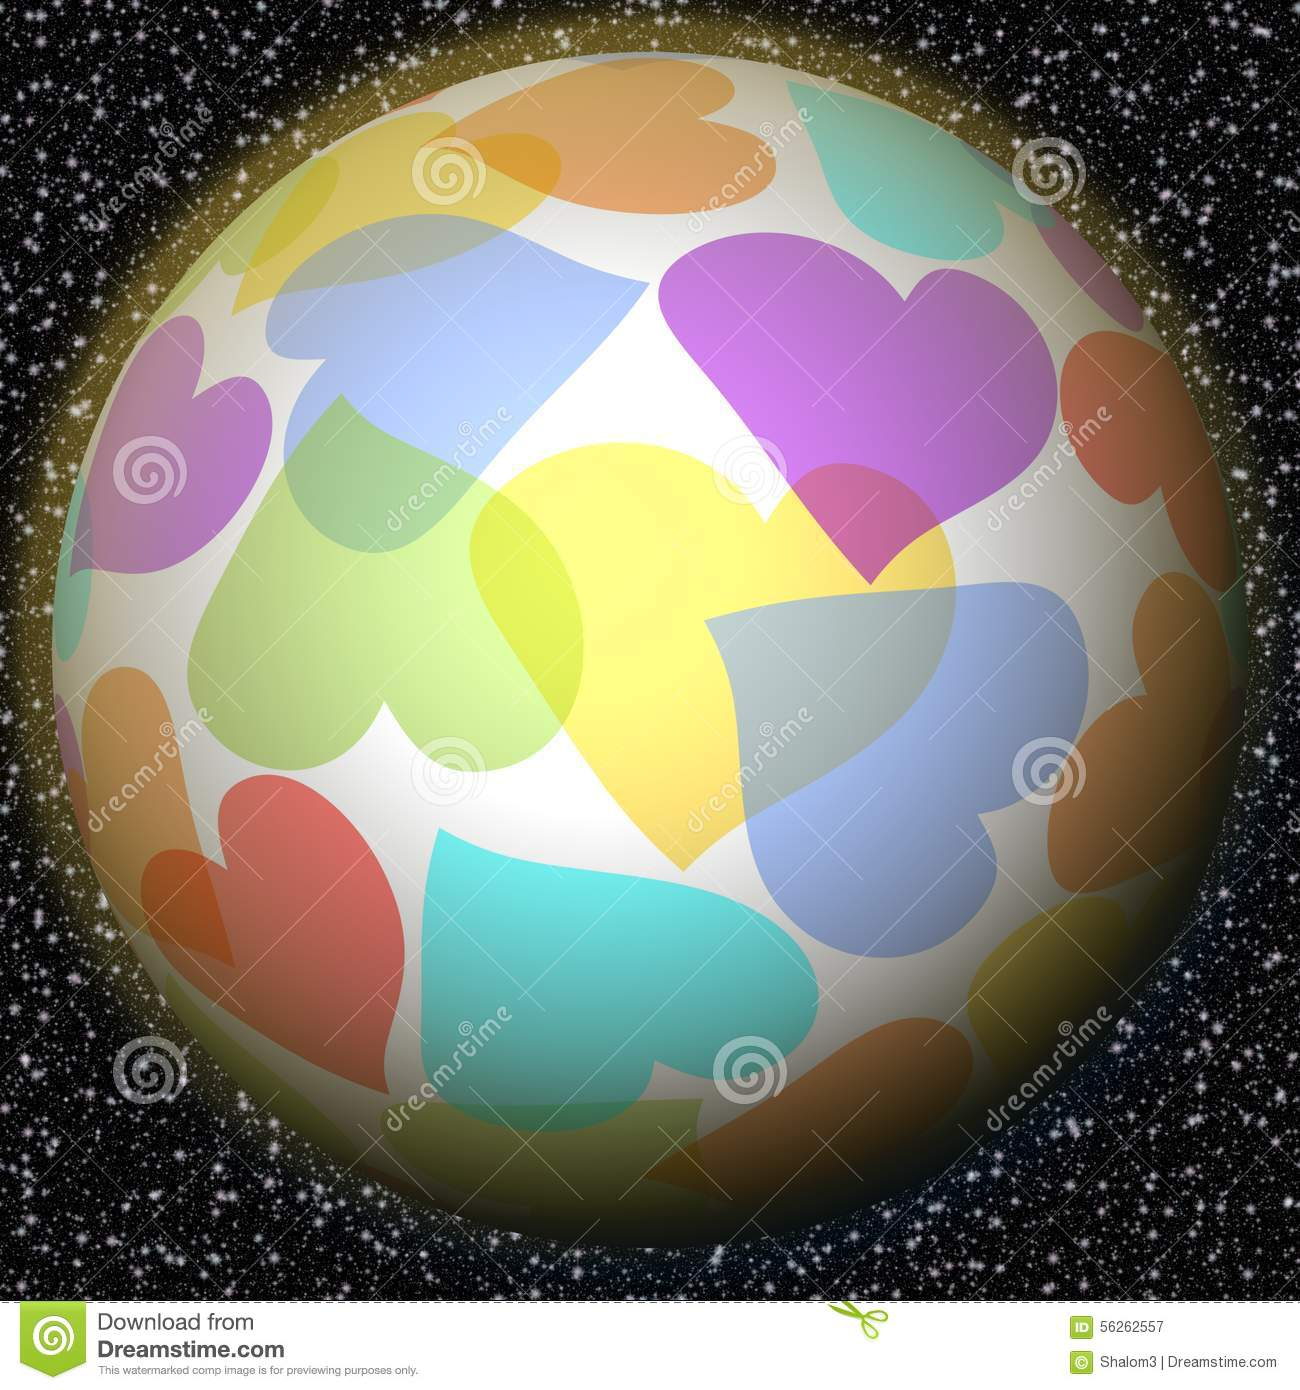 Romantic fantasy planet with rainbow heart motif on background with romantic fantasy planet with rainbow heart motif on background with galaxy stars symbol of peace love happiness luck welfare biocorpaavc Image collections